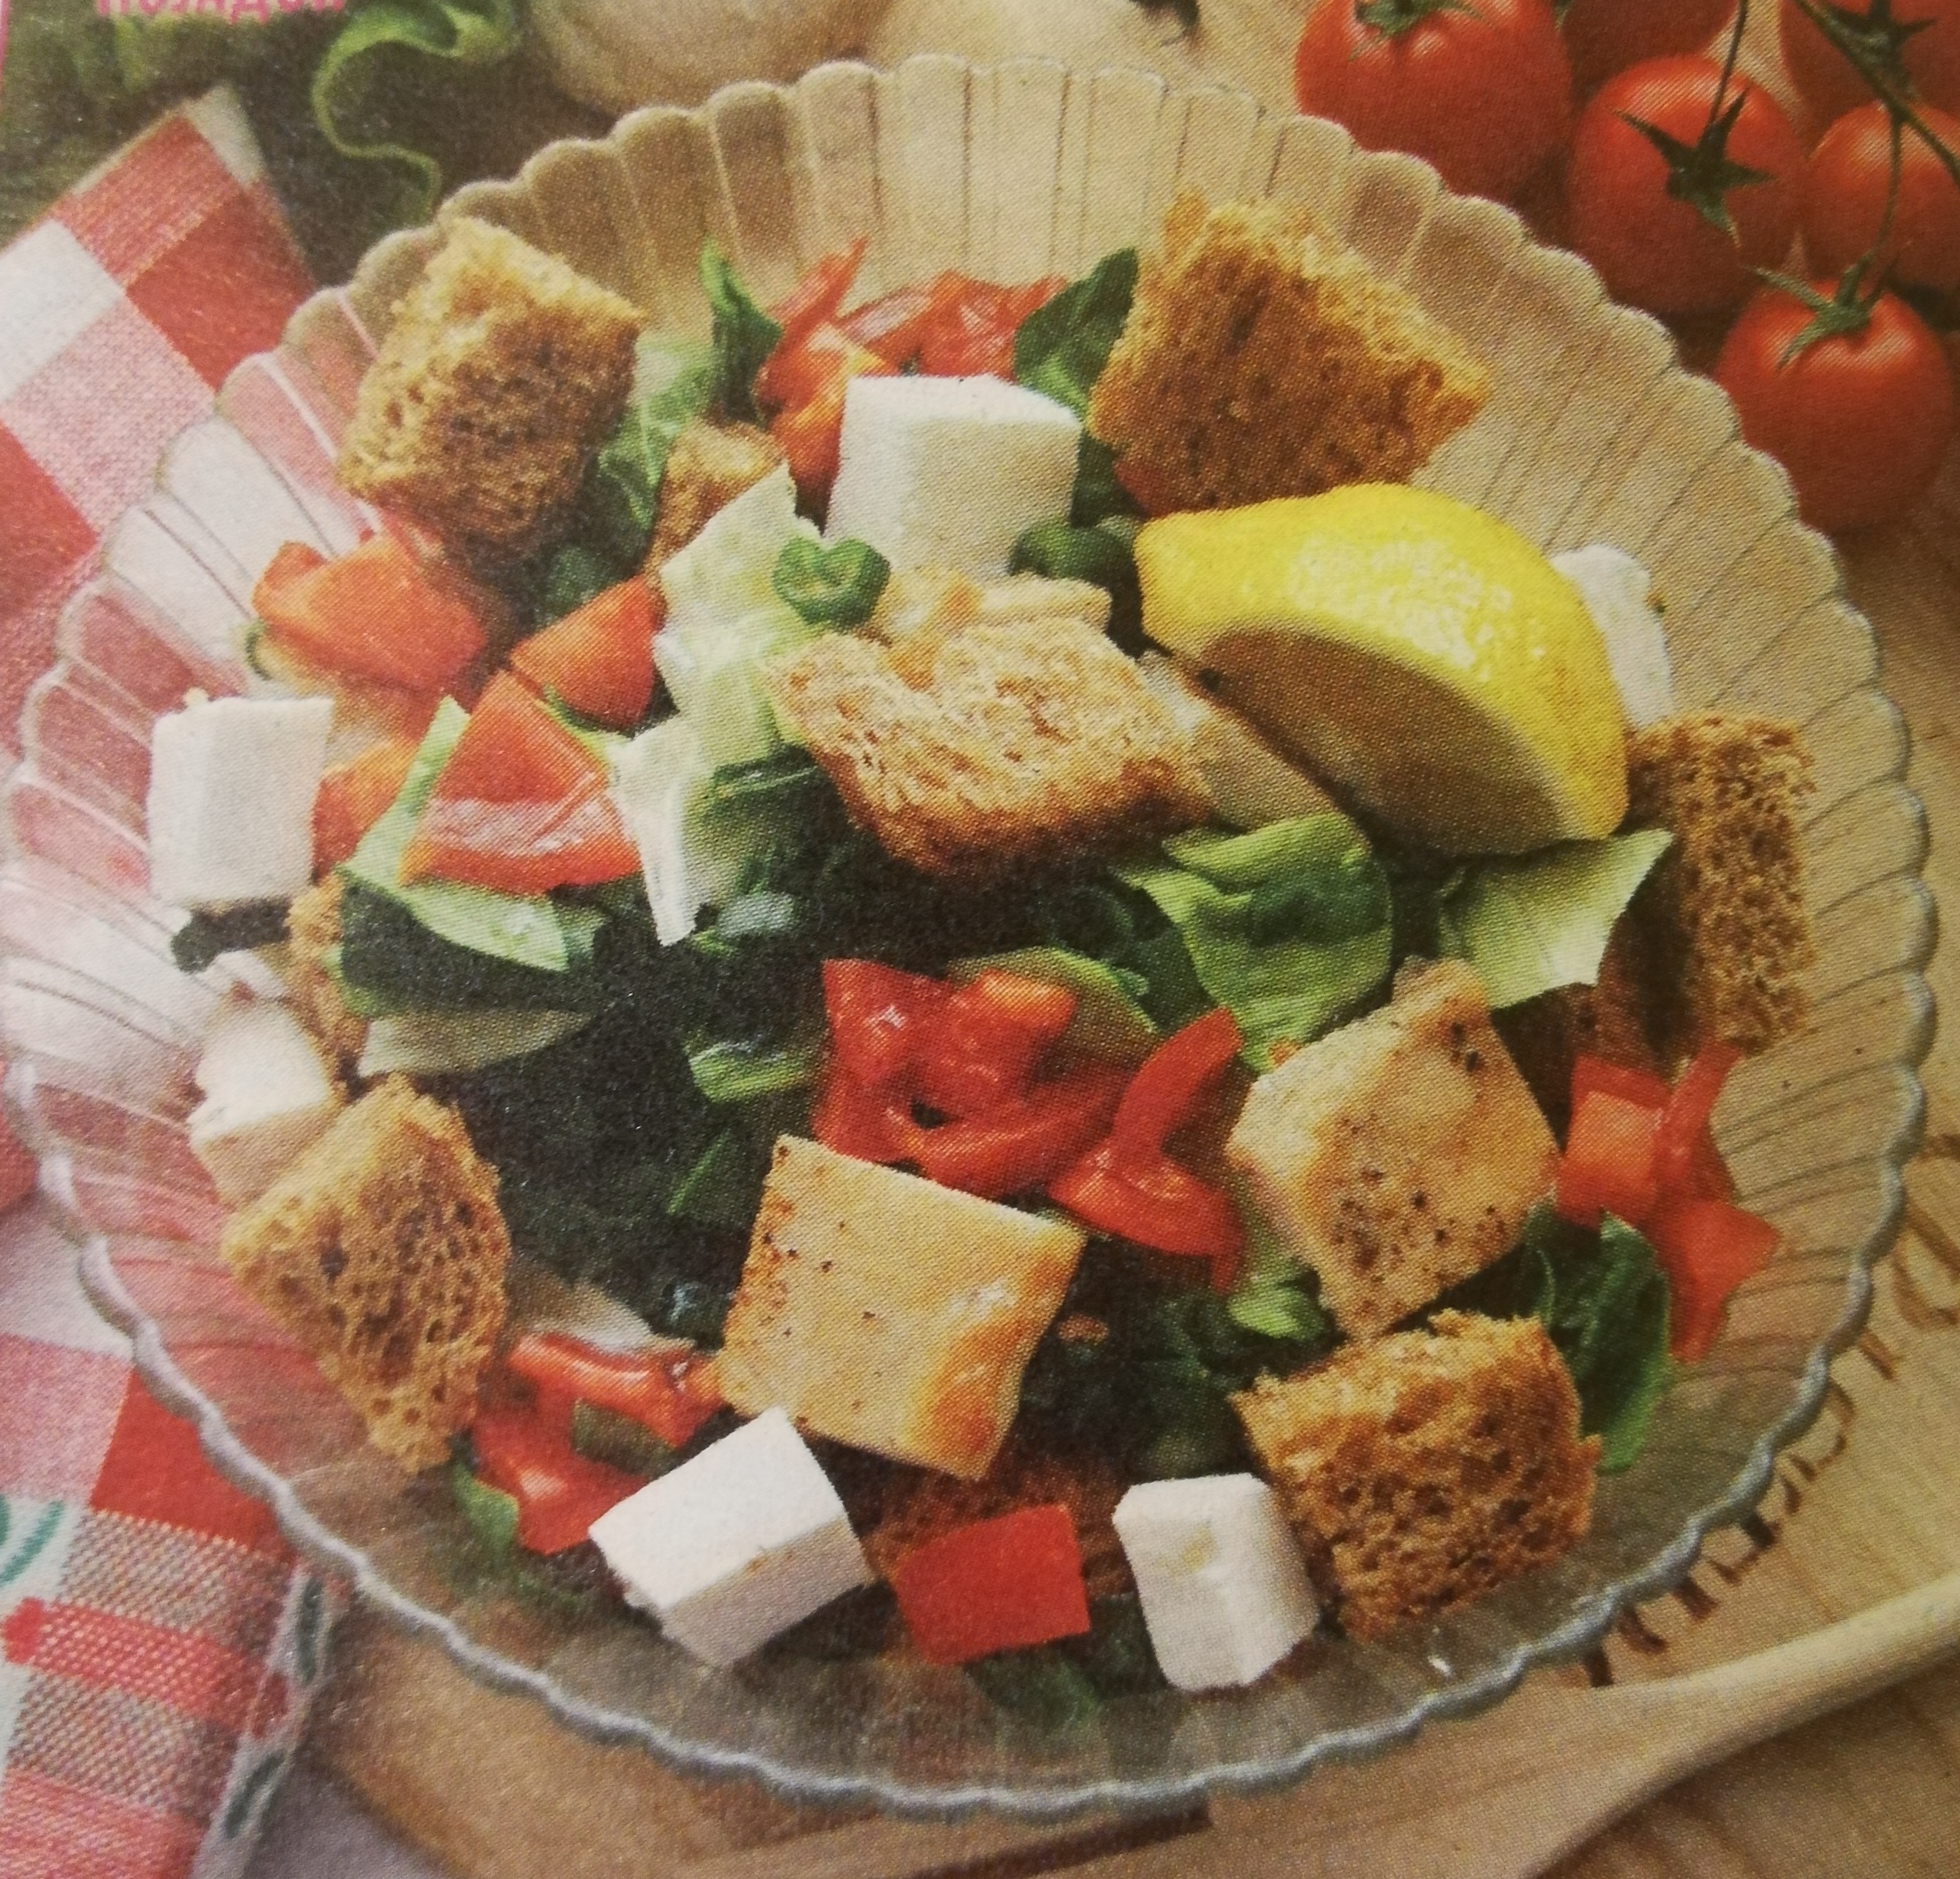 A sample of the chicken salad